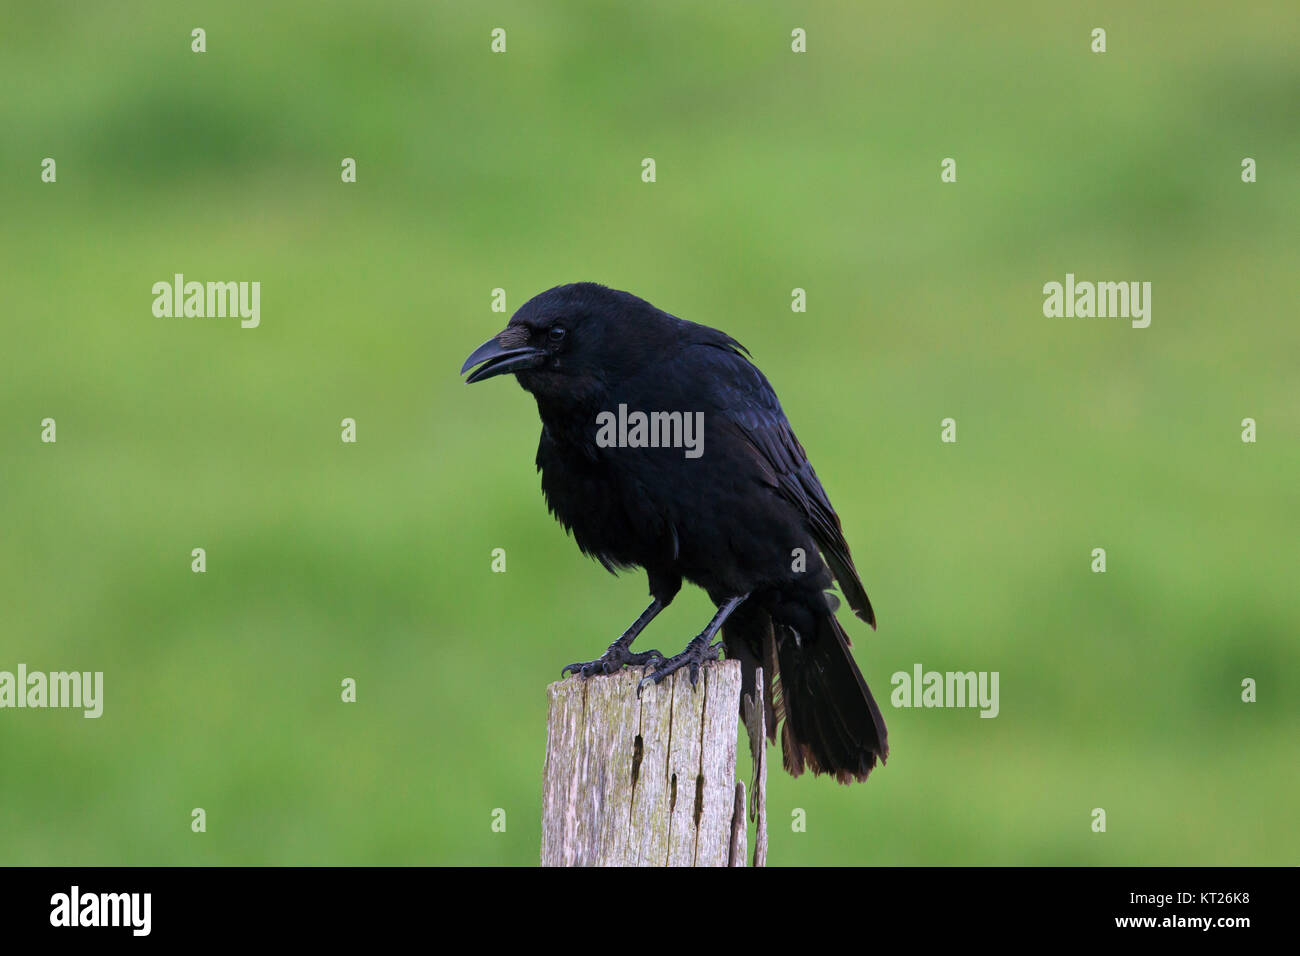 Carrion crow (Corvus corone) perched on wooden fence post along field - Stock Image